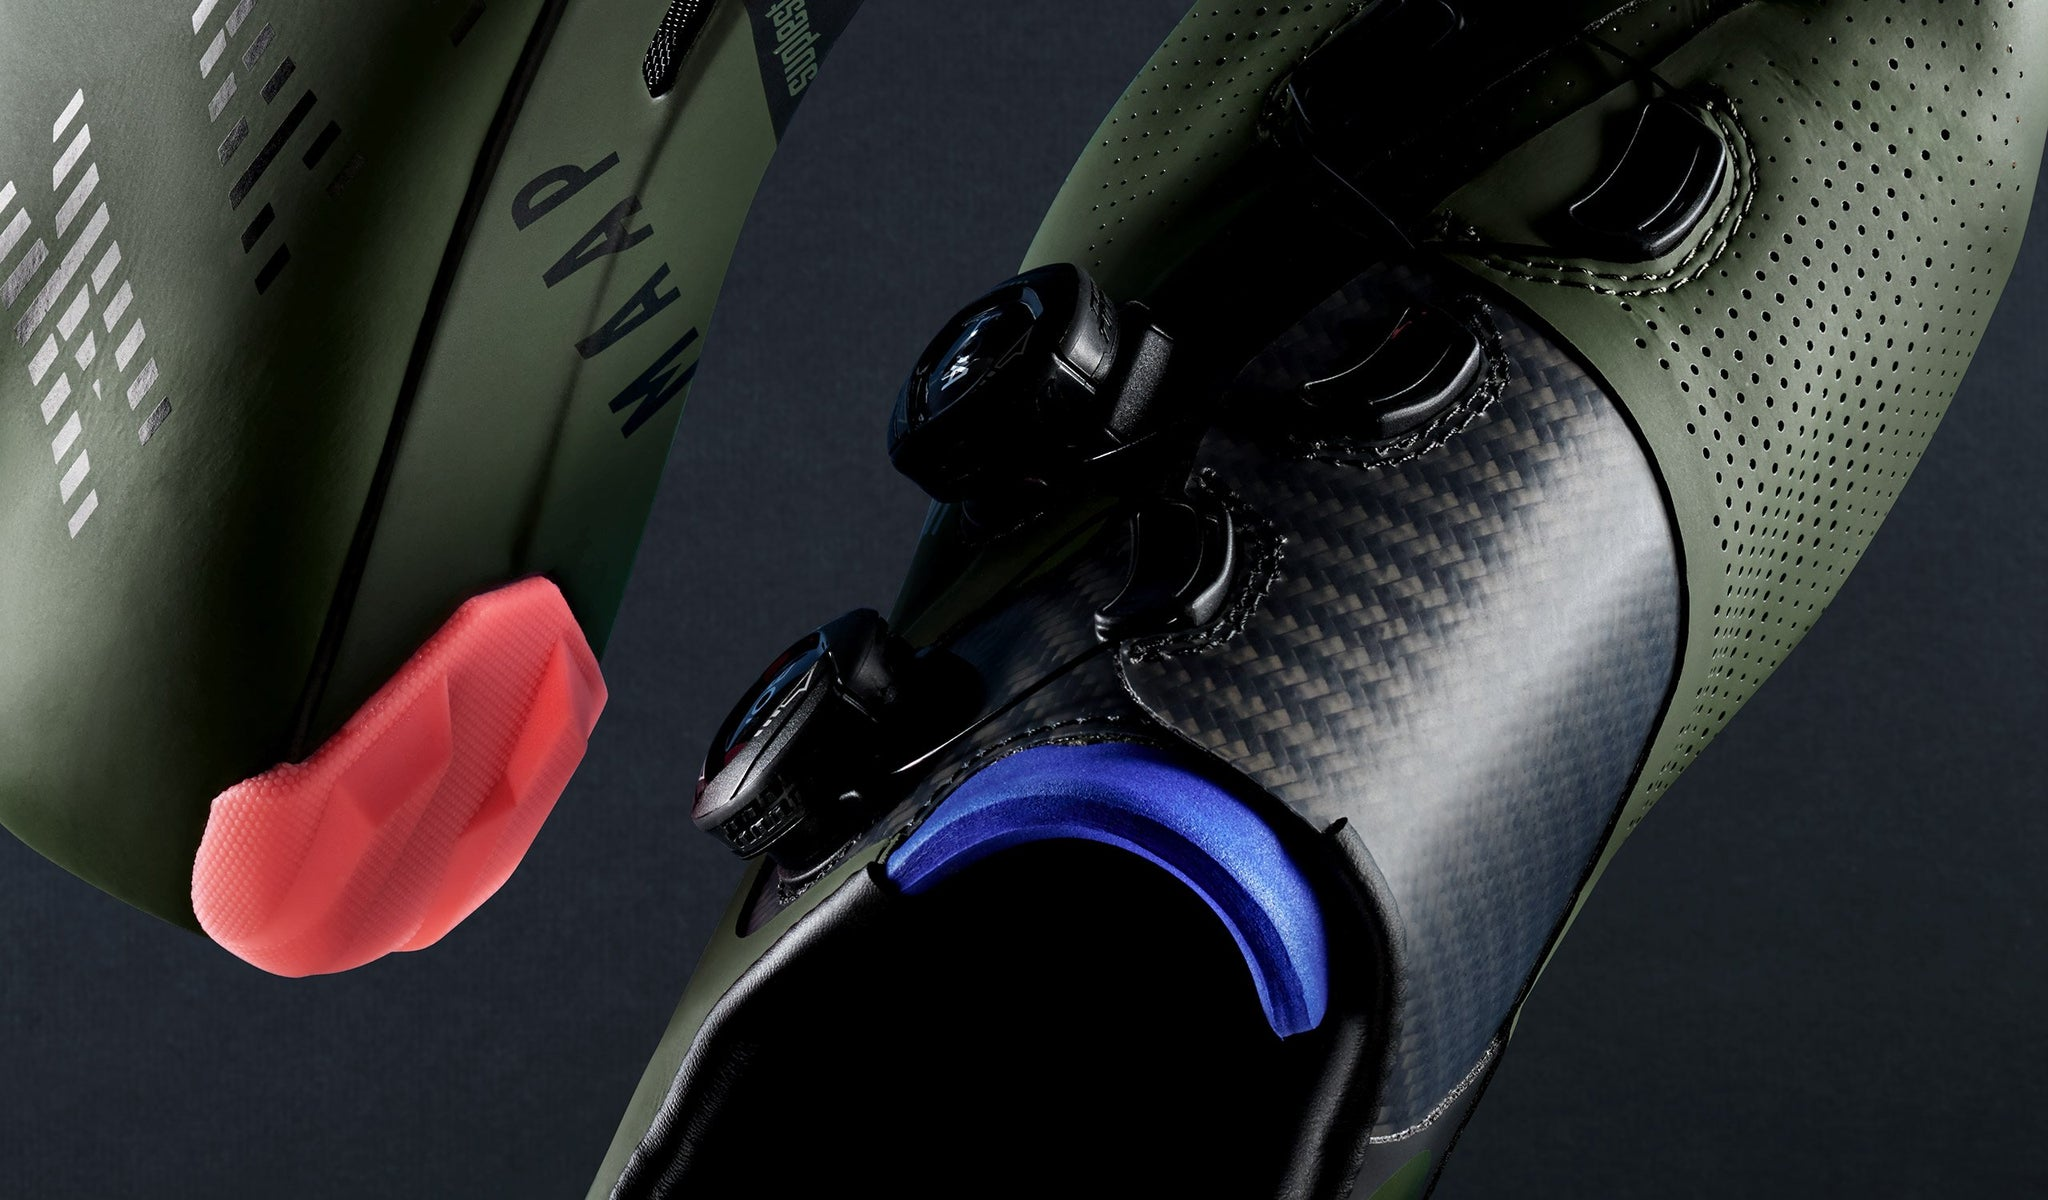 MAAP x Suplest Edge+ Pro Road Cycling Shoe in Army Green.